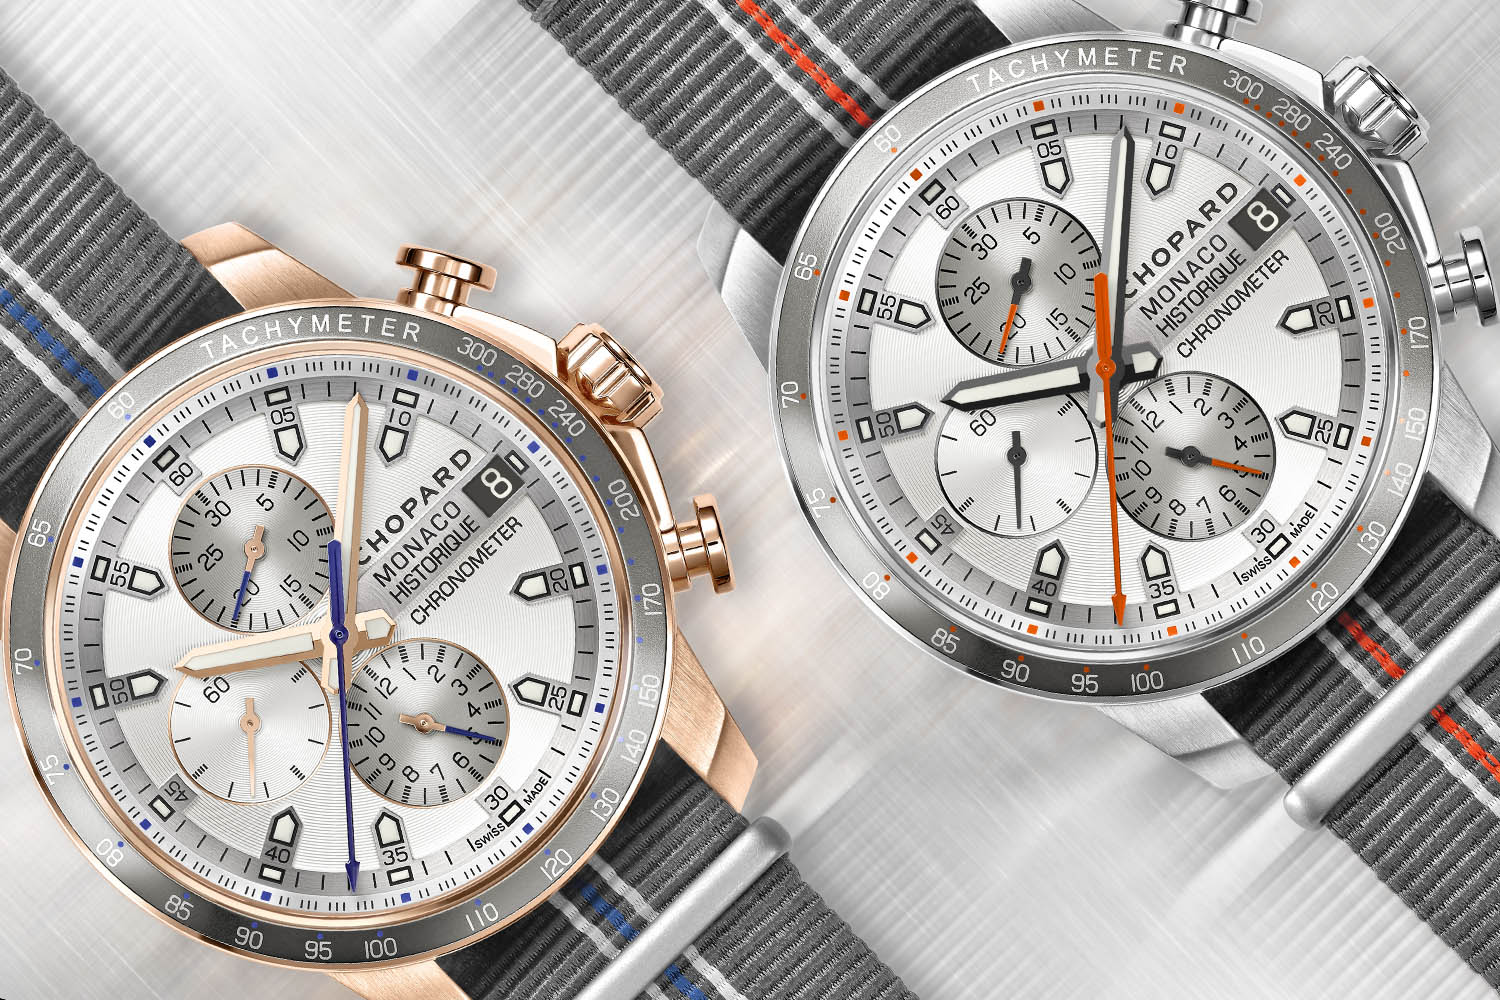 Chopard Grand Prix de Monaco Historique 2016 Race Edition Chronographs - 6